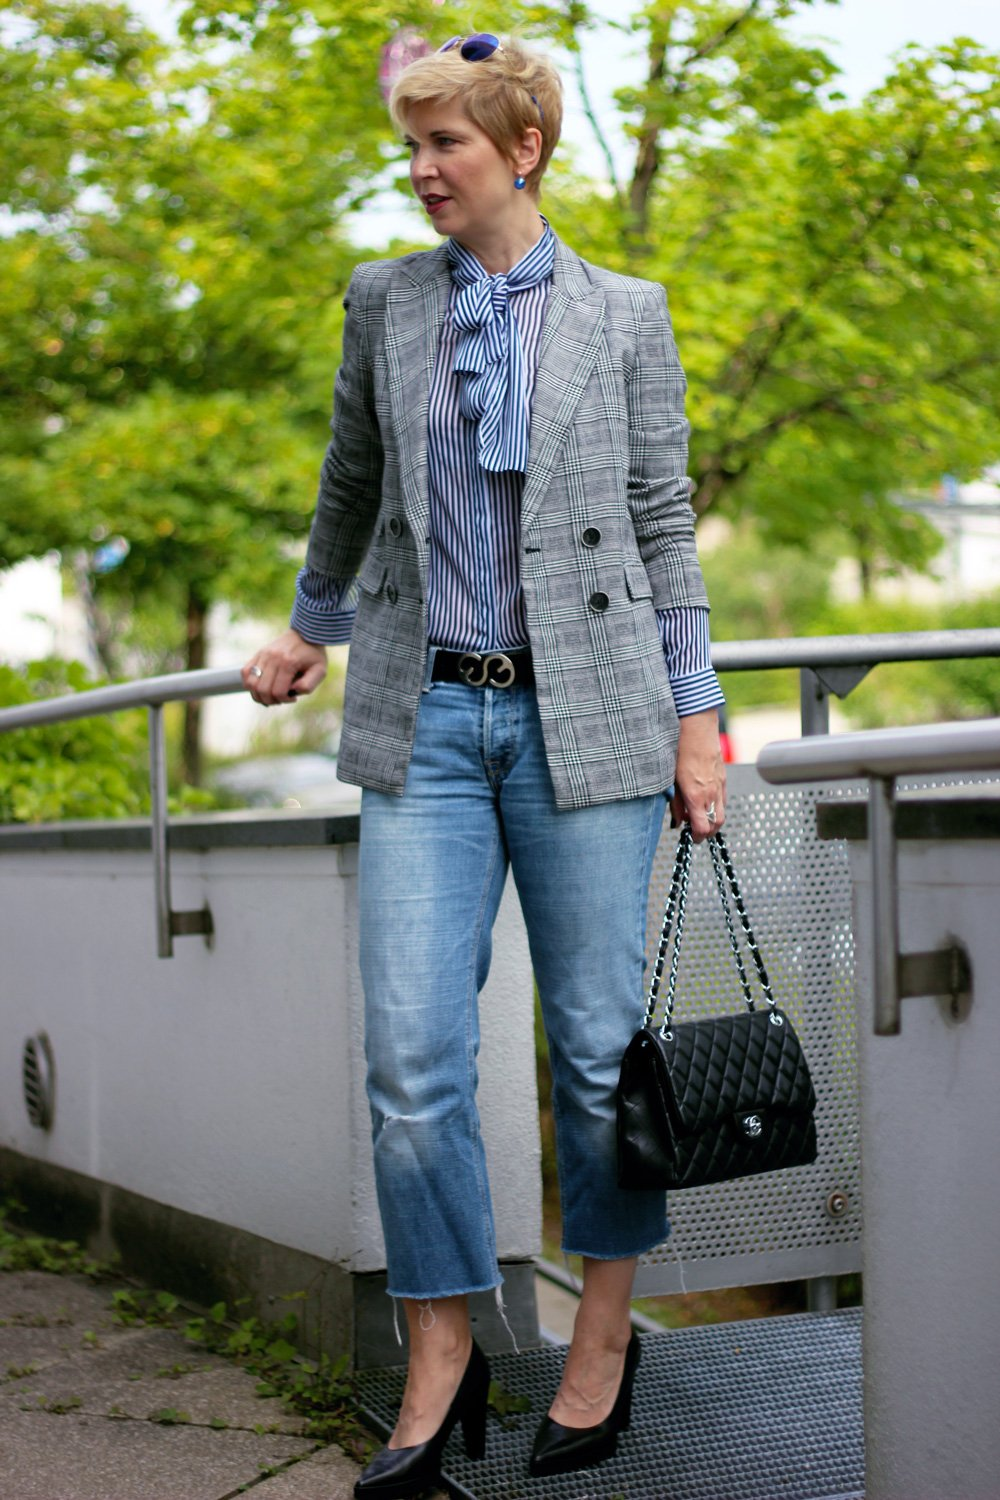 Conny Doll Lifestyle: Glencheck und Streifen, Denim, casual, pumps, business-styling